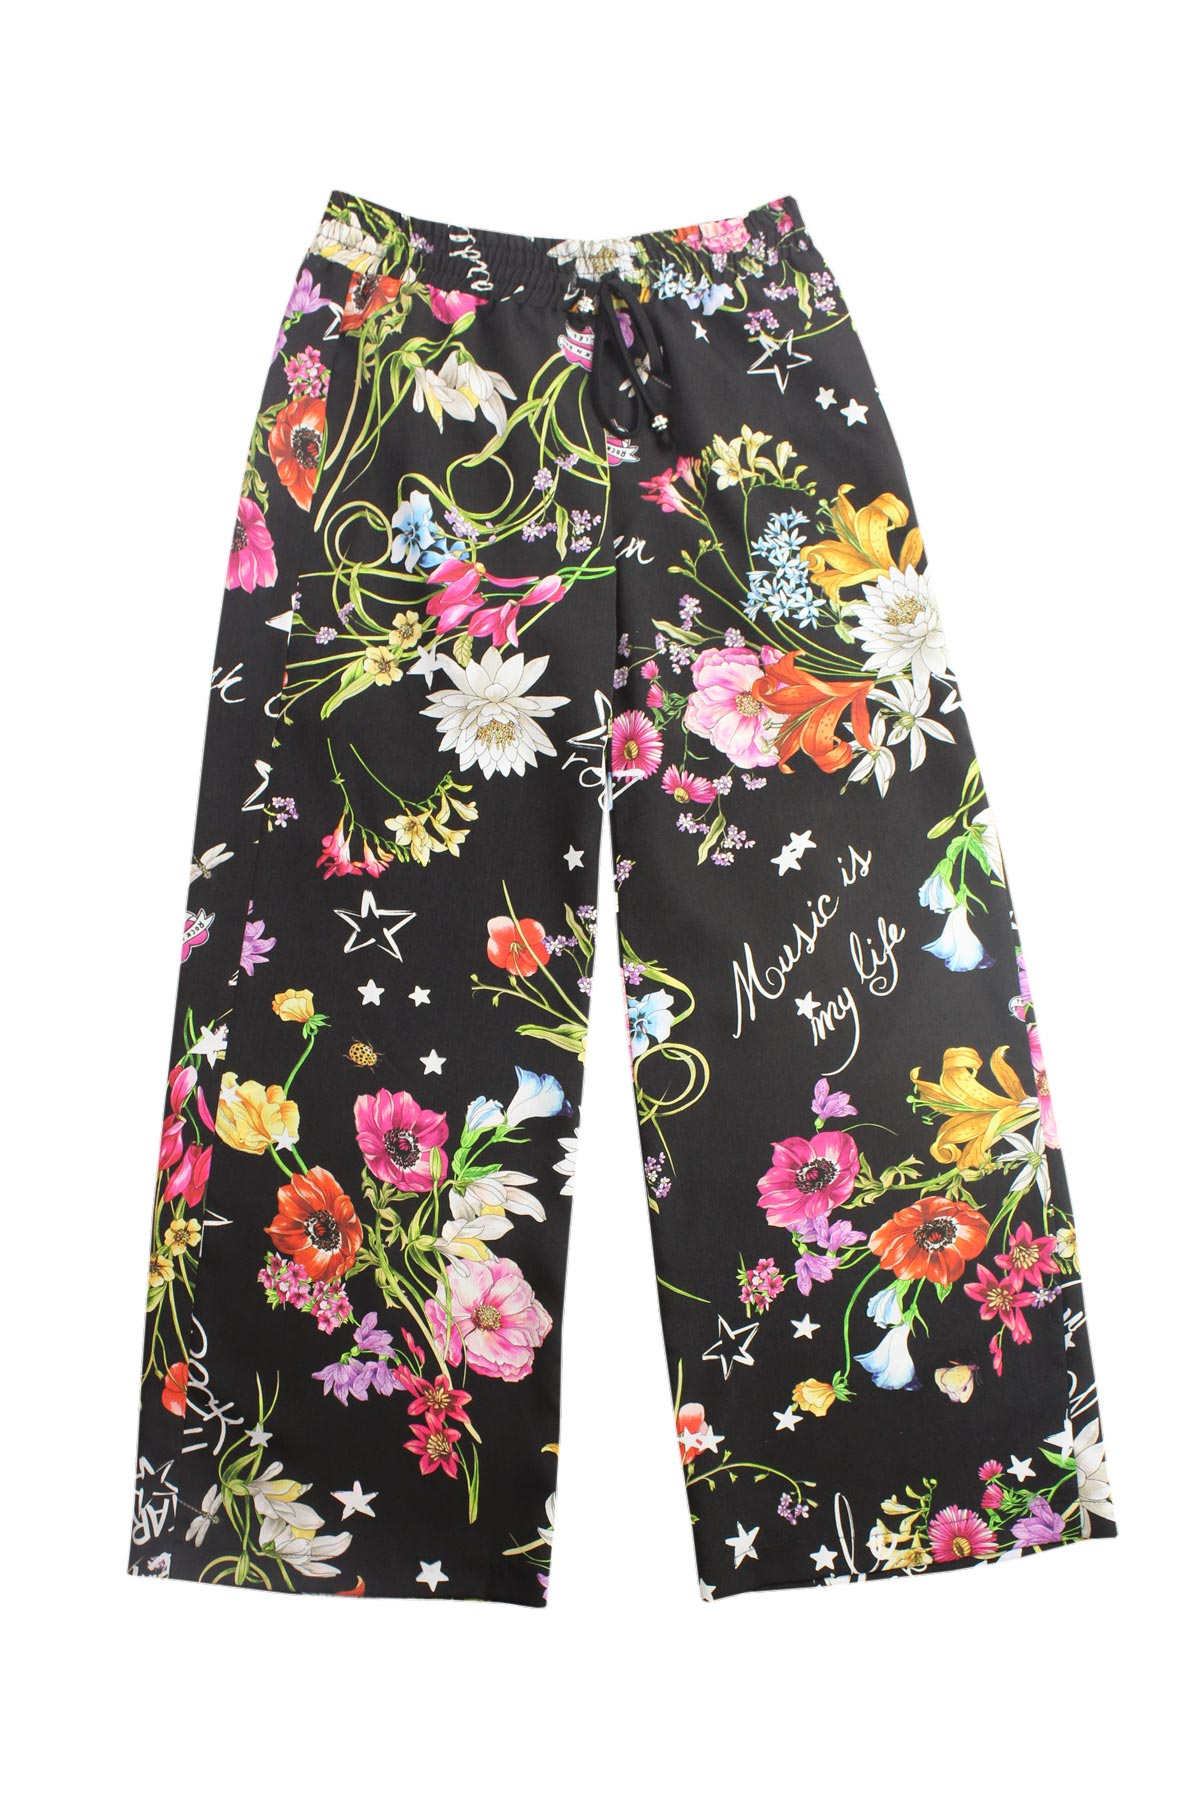 wholesale dealer 192af 23a4c Pantalone a palazzo floreale - ELSY - Intrighi Griffe